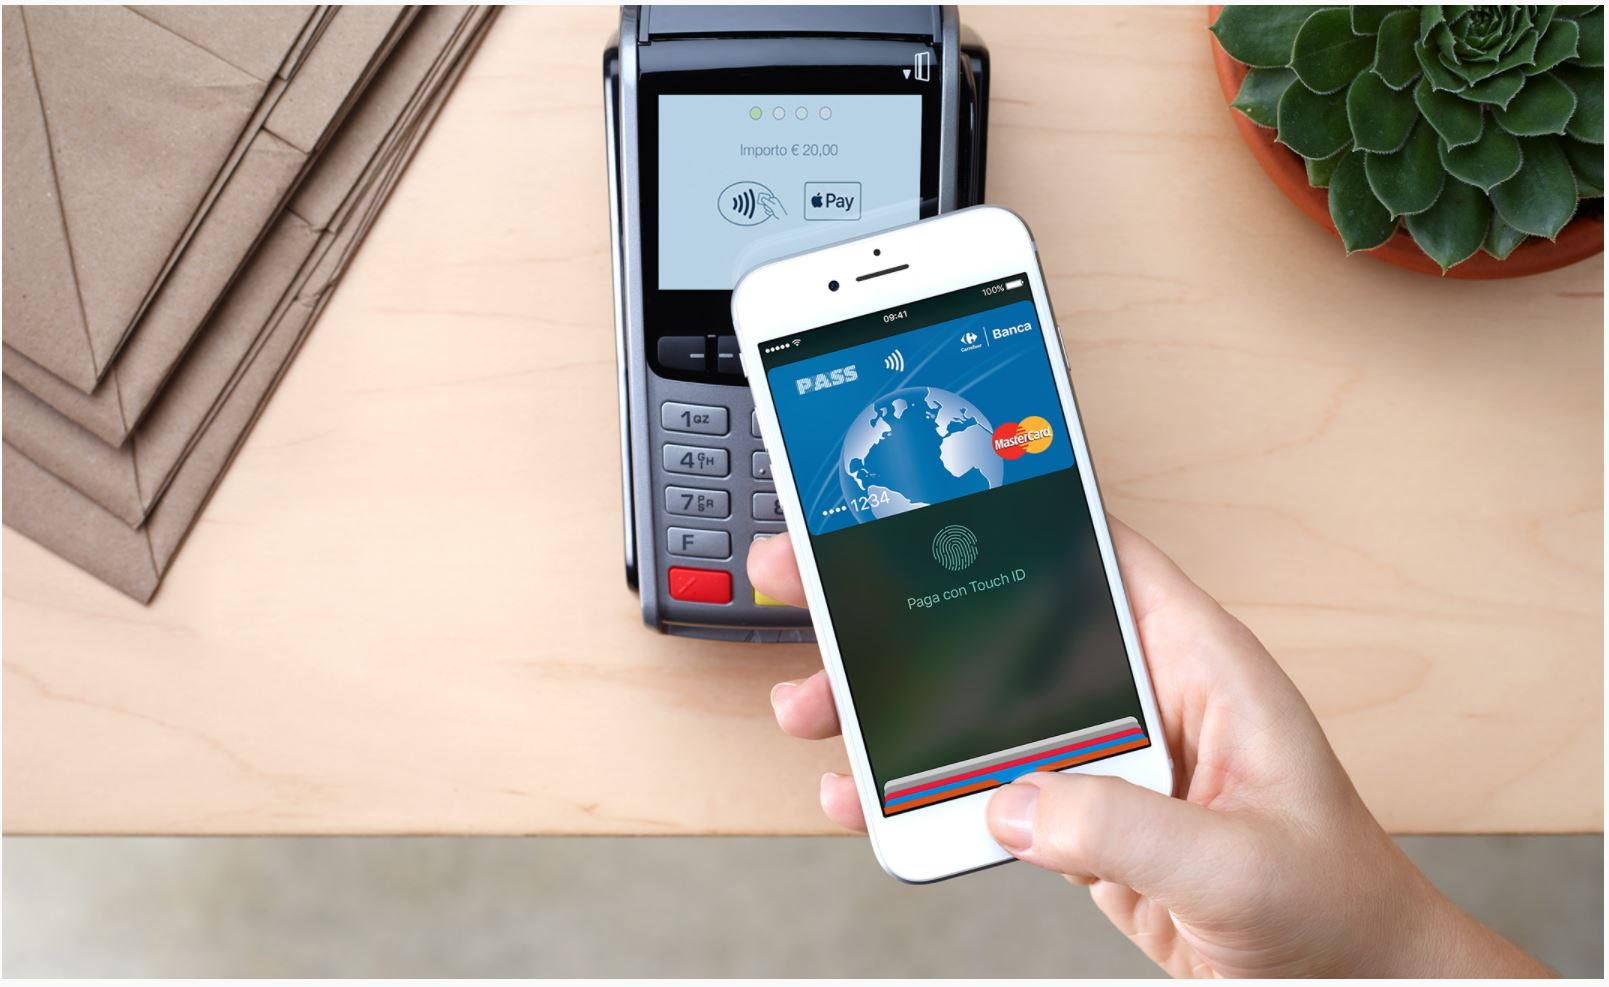 Apple Pay è attivo 1